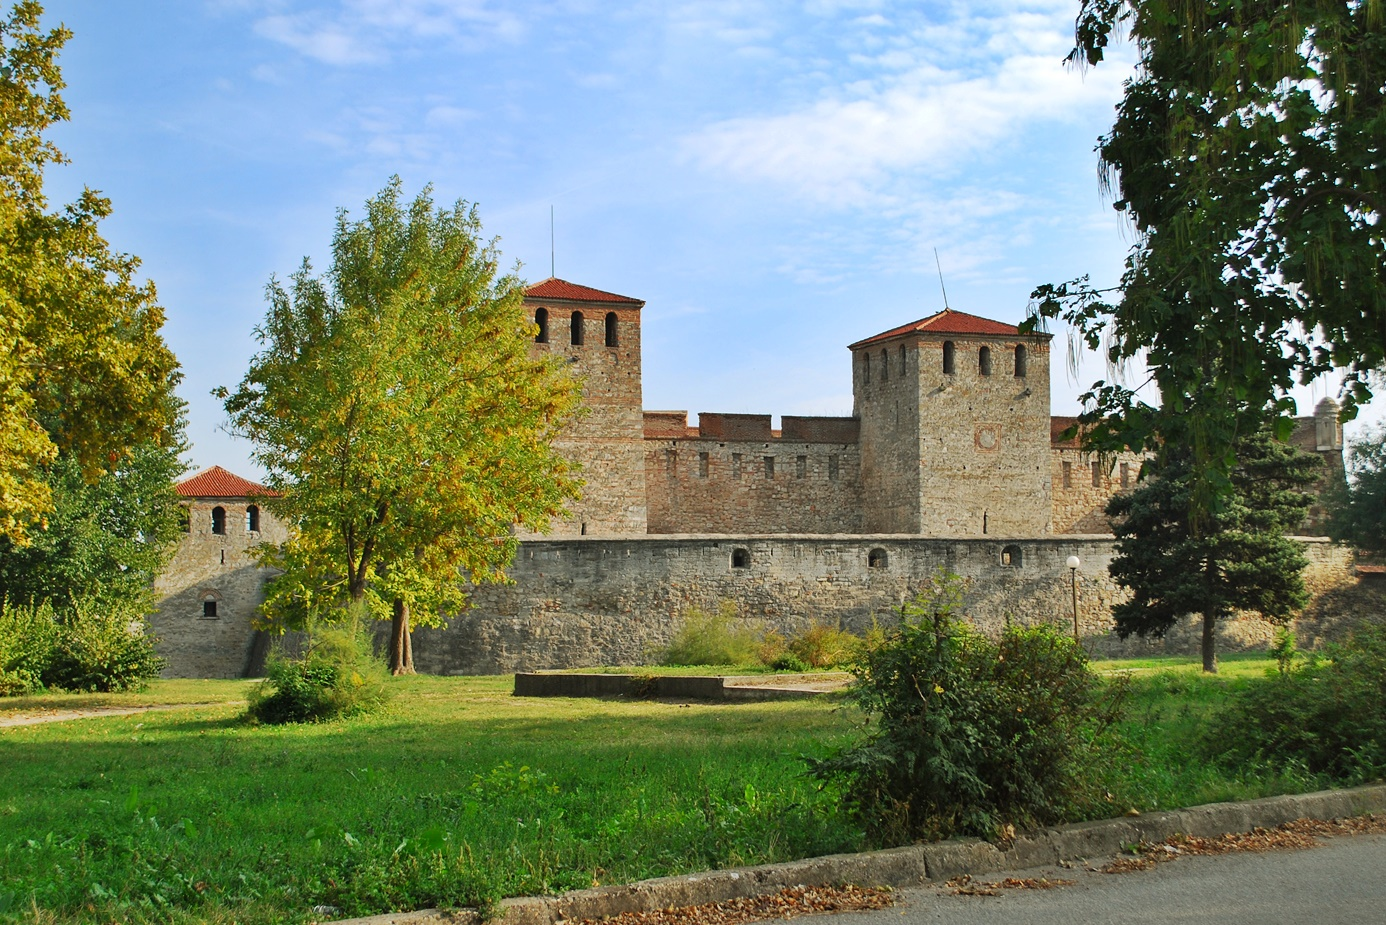 Let's Visit Baba Vida: The Only Fully Preserved Medieval Fortress in Bulgaria